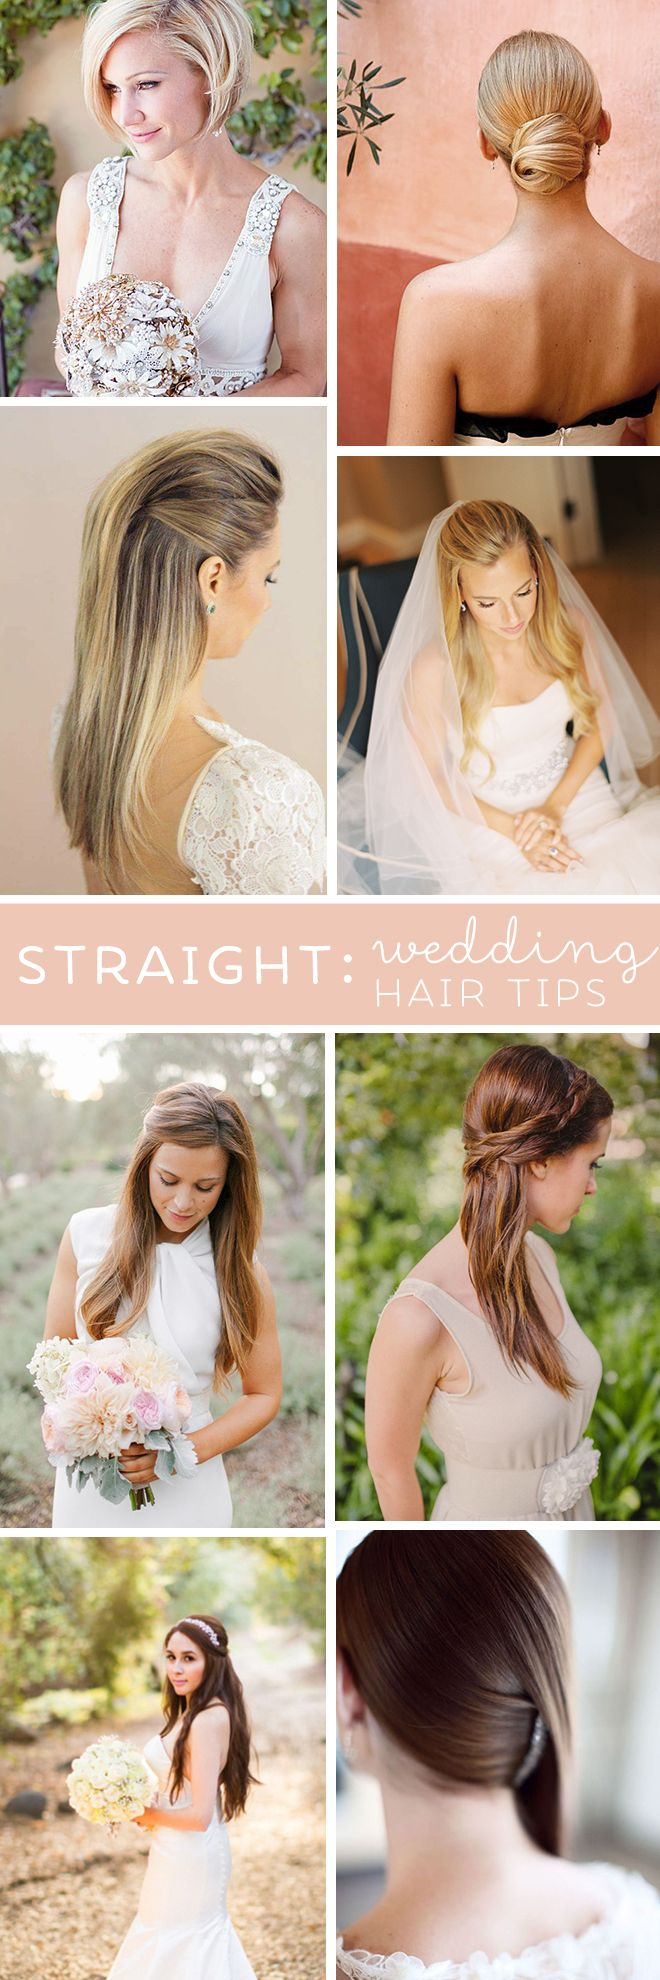 Best Wedding Hair Tips For Wearing Straight Styles Straight Wedding Hair Bridesmaid Hair Best Wedding Hairstyles